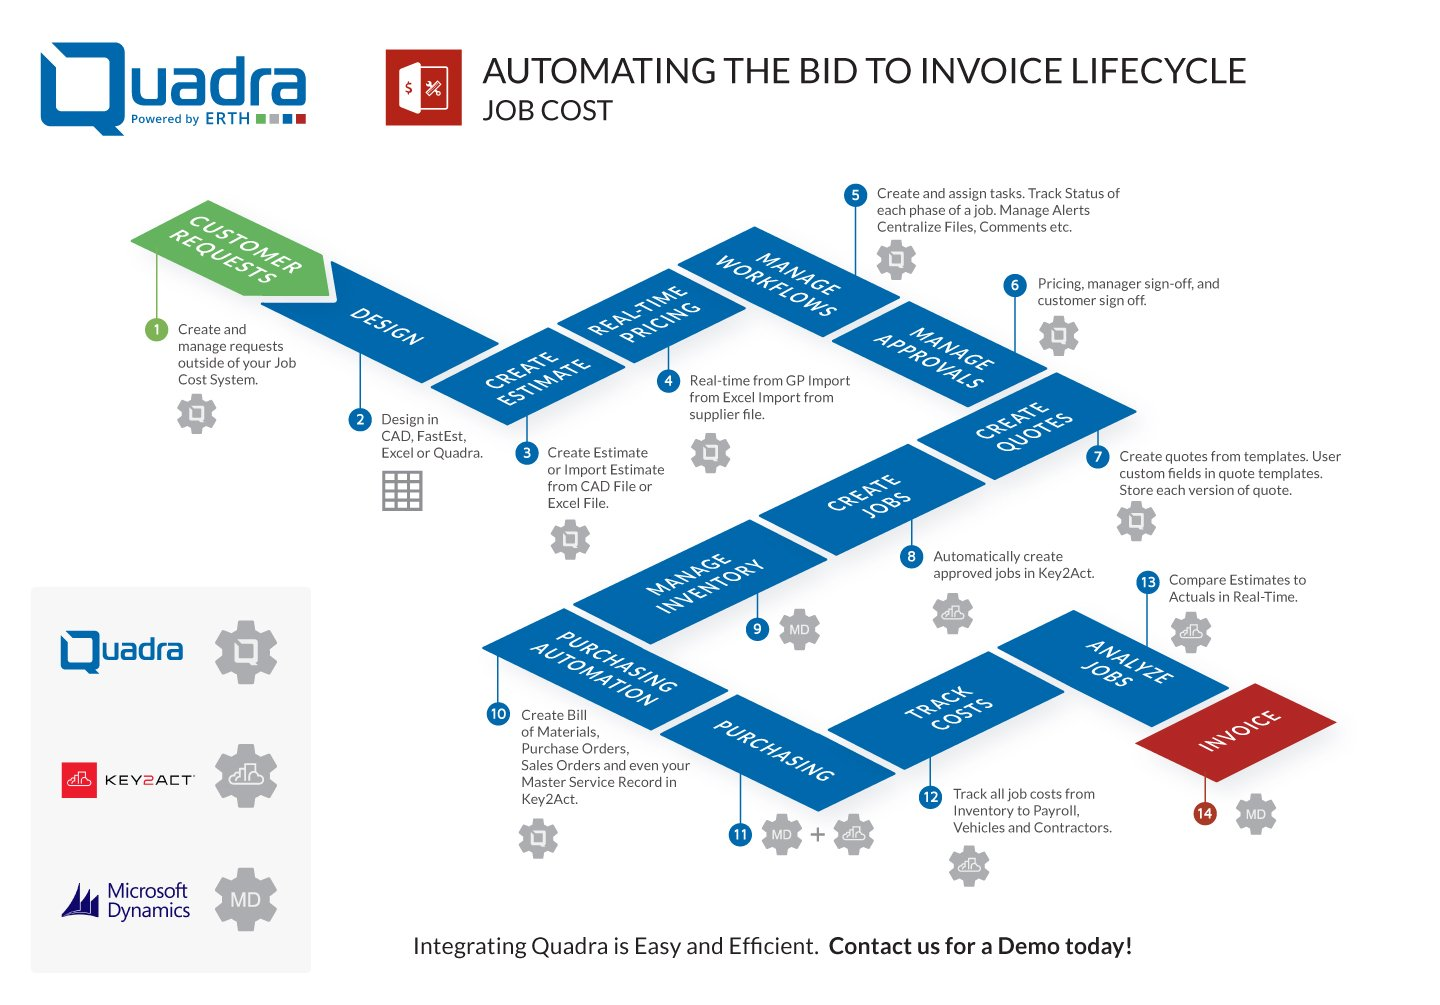 Workflow infographic illustrating Quadra job cost estimating process from bid to invoice stage